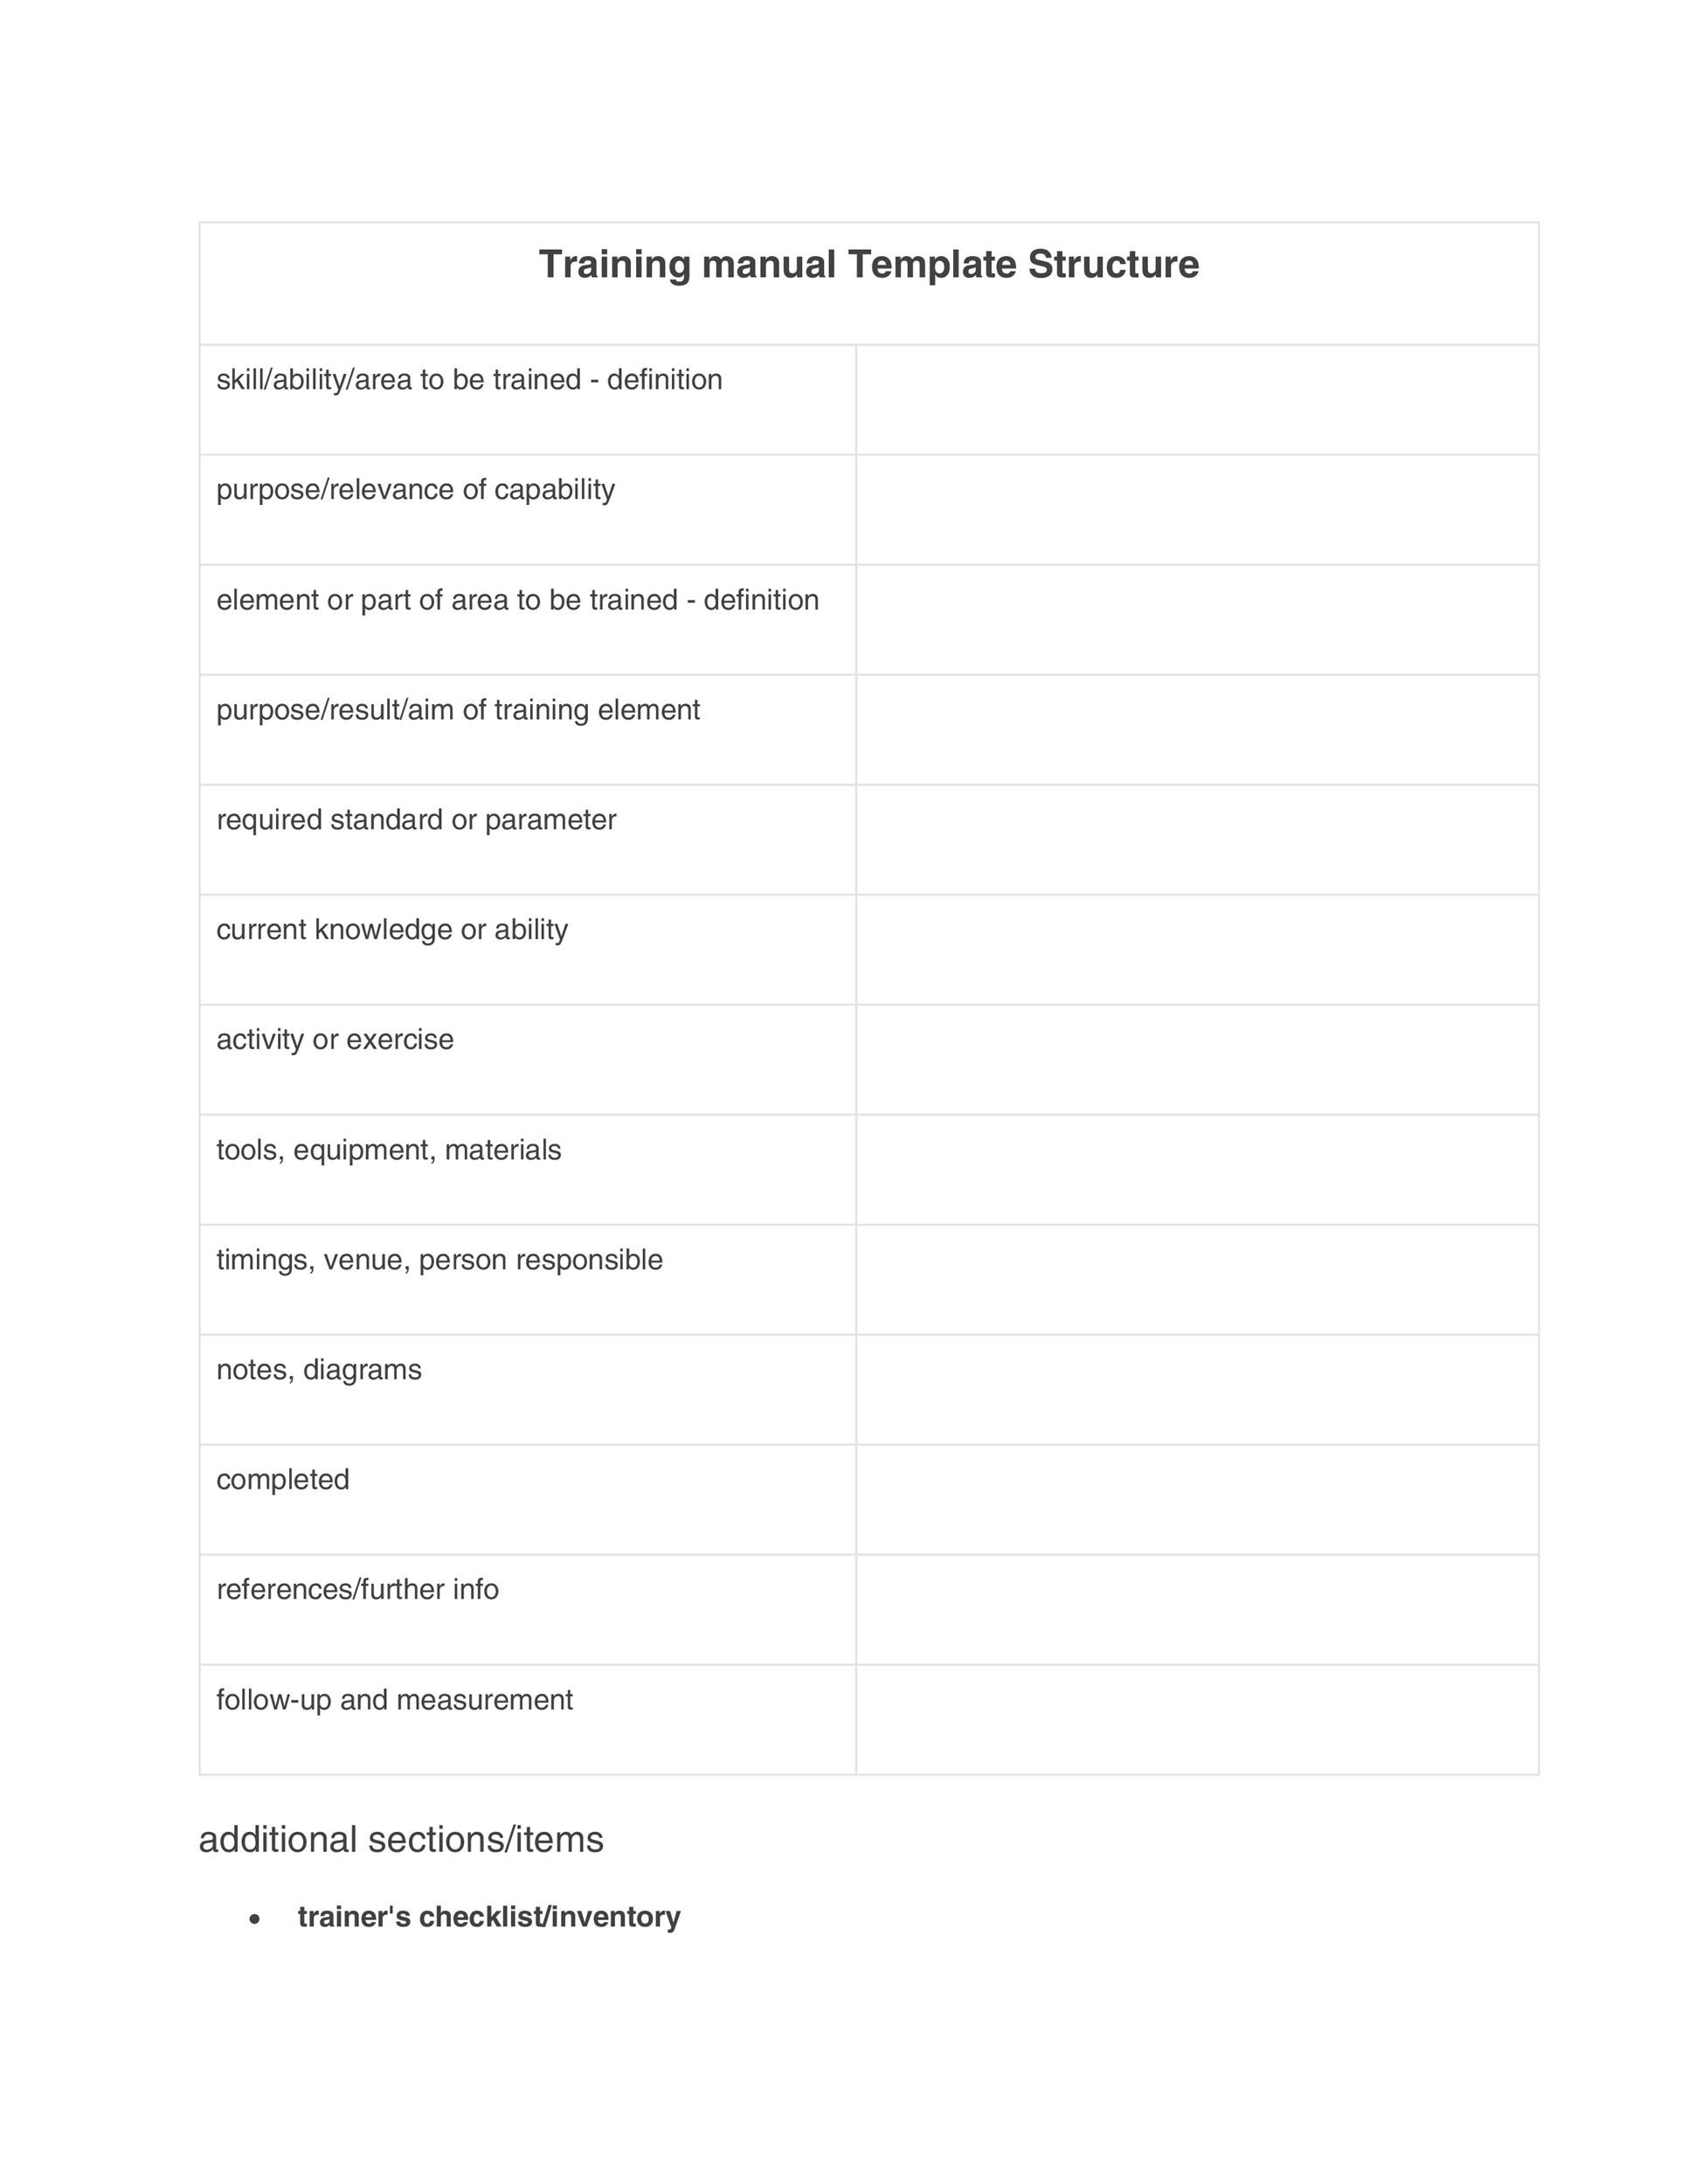 Training Module Template Training Manual 40 Free Templates Examples In Ms Word